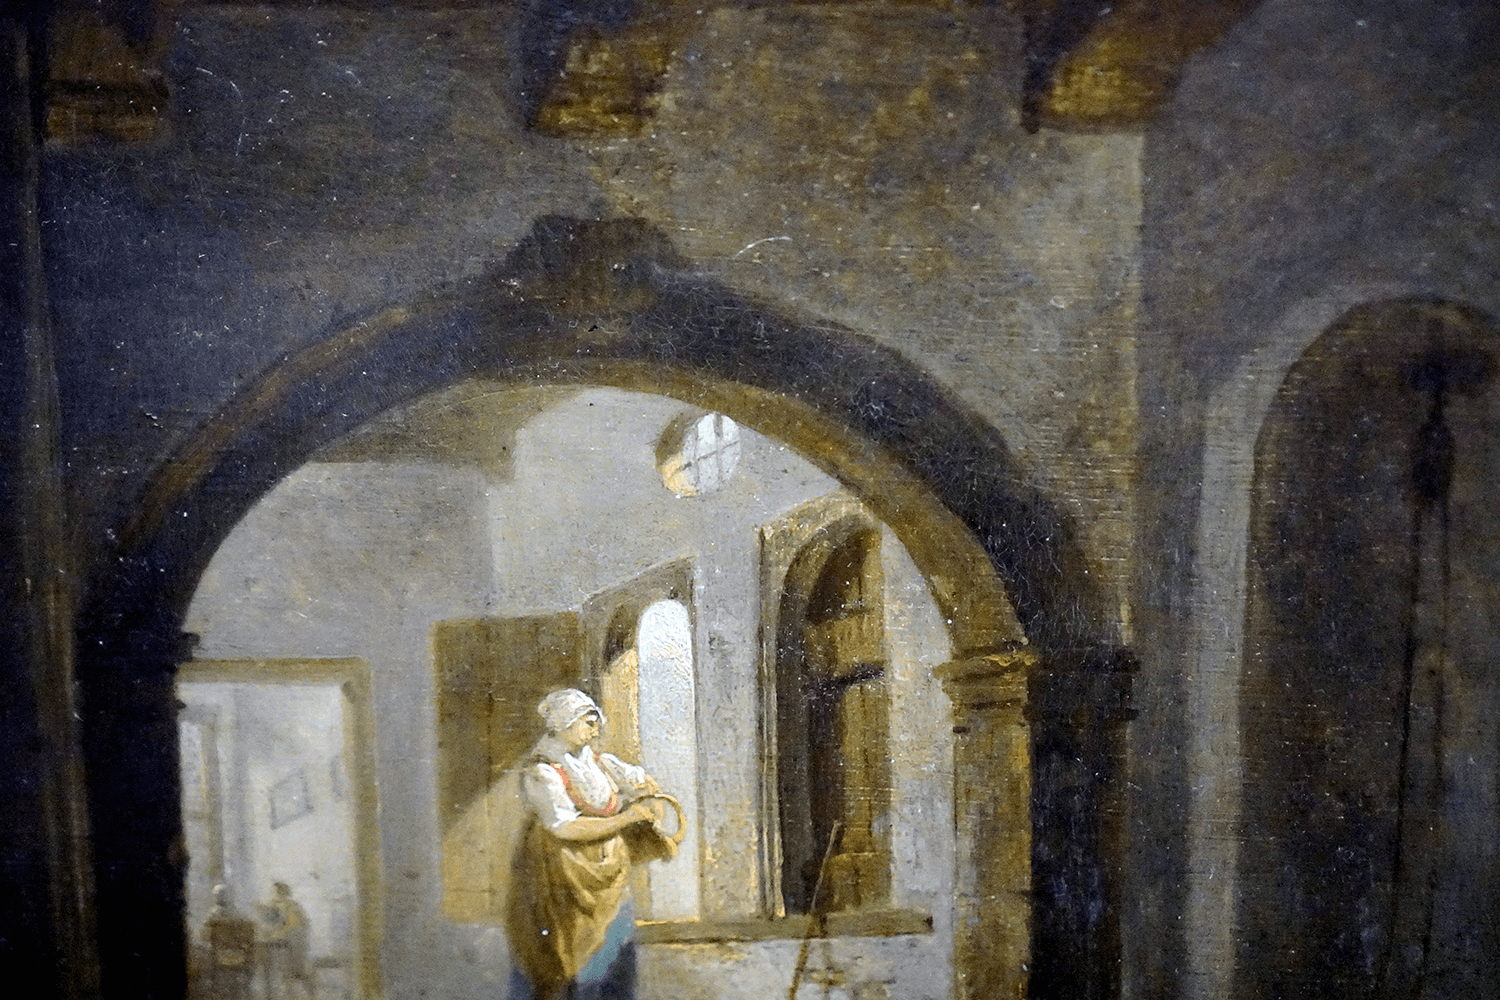 Aert Van Der Neer Painting of an Interior Scene